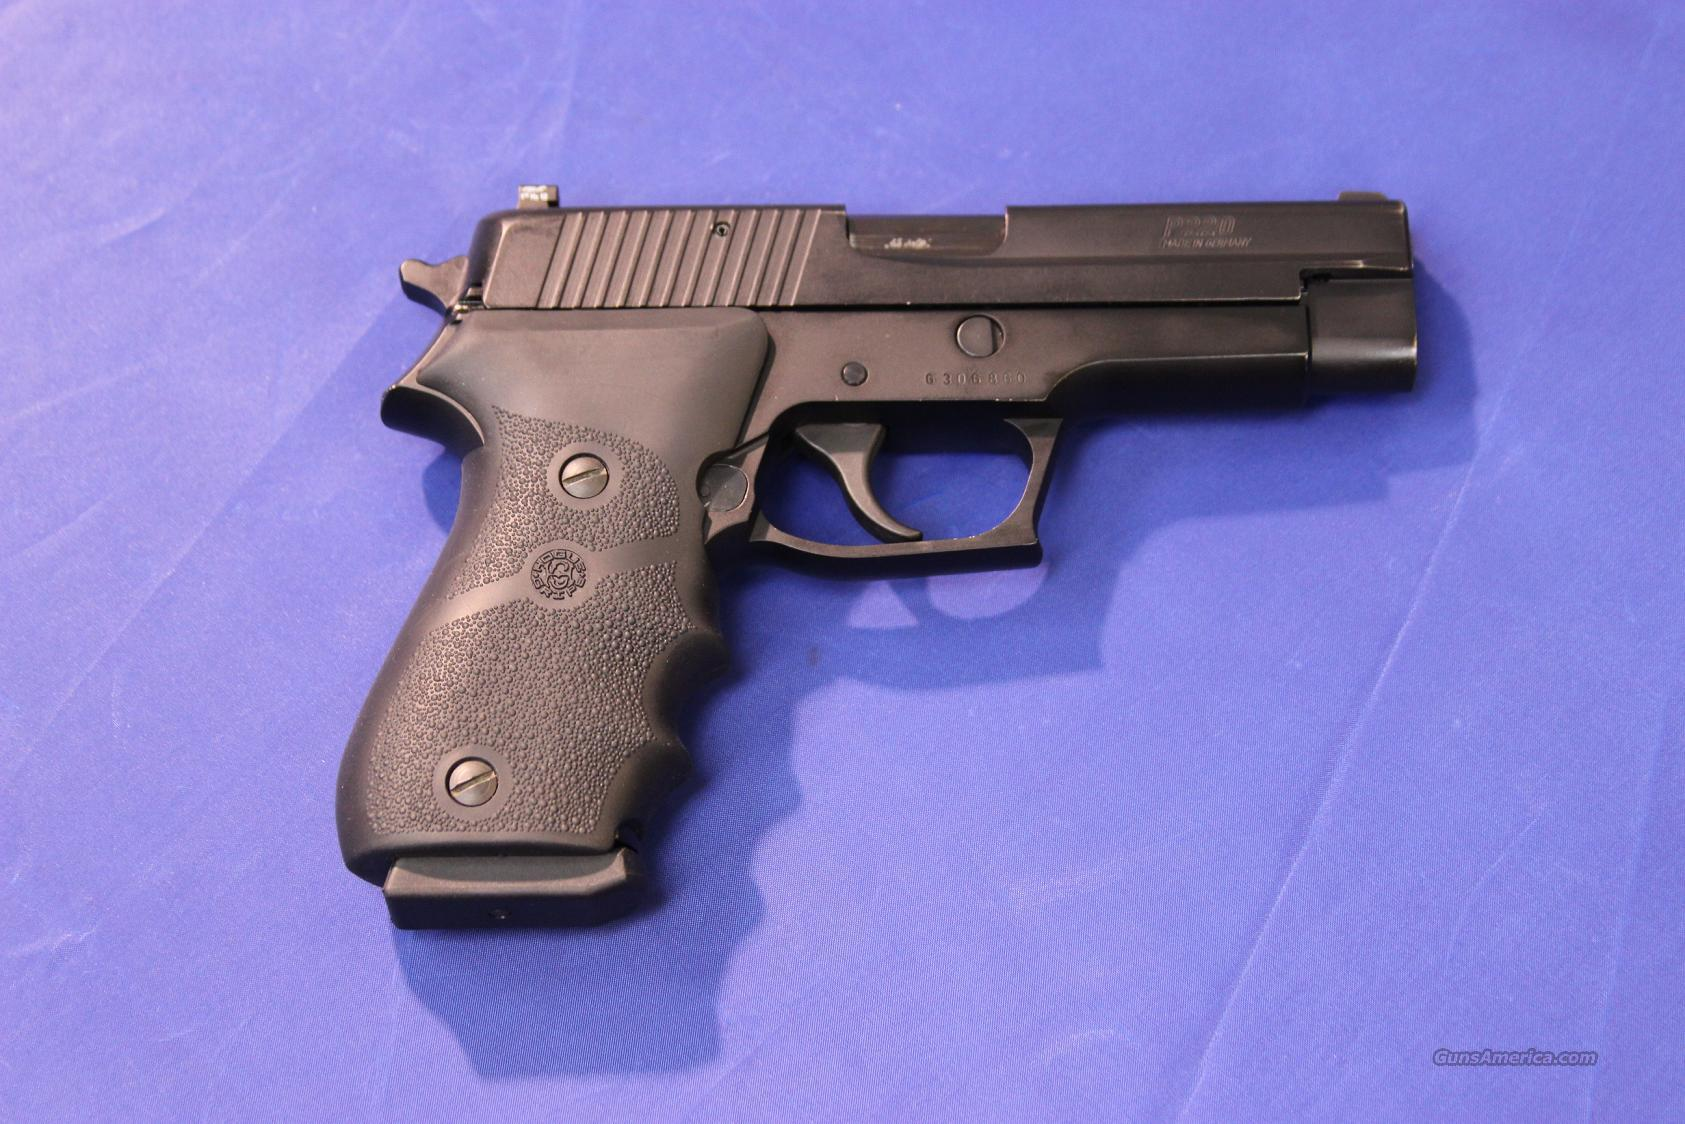 ***SOLD*** SIG SAUER P220 .45 ACP W/NIGHT SIGHTS  Guns > Pistols > Sig - Sauer/Sigarms Pistols > P220